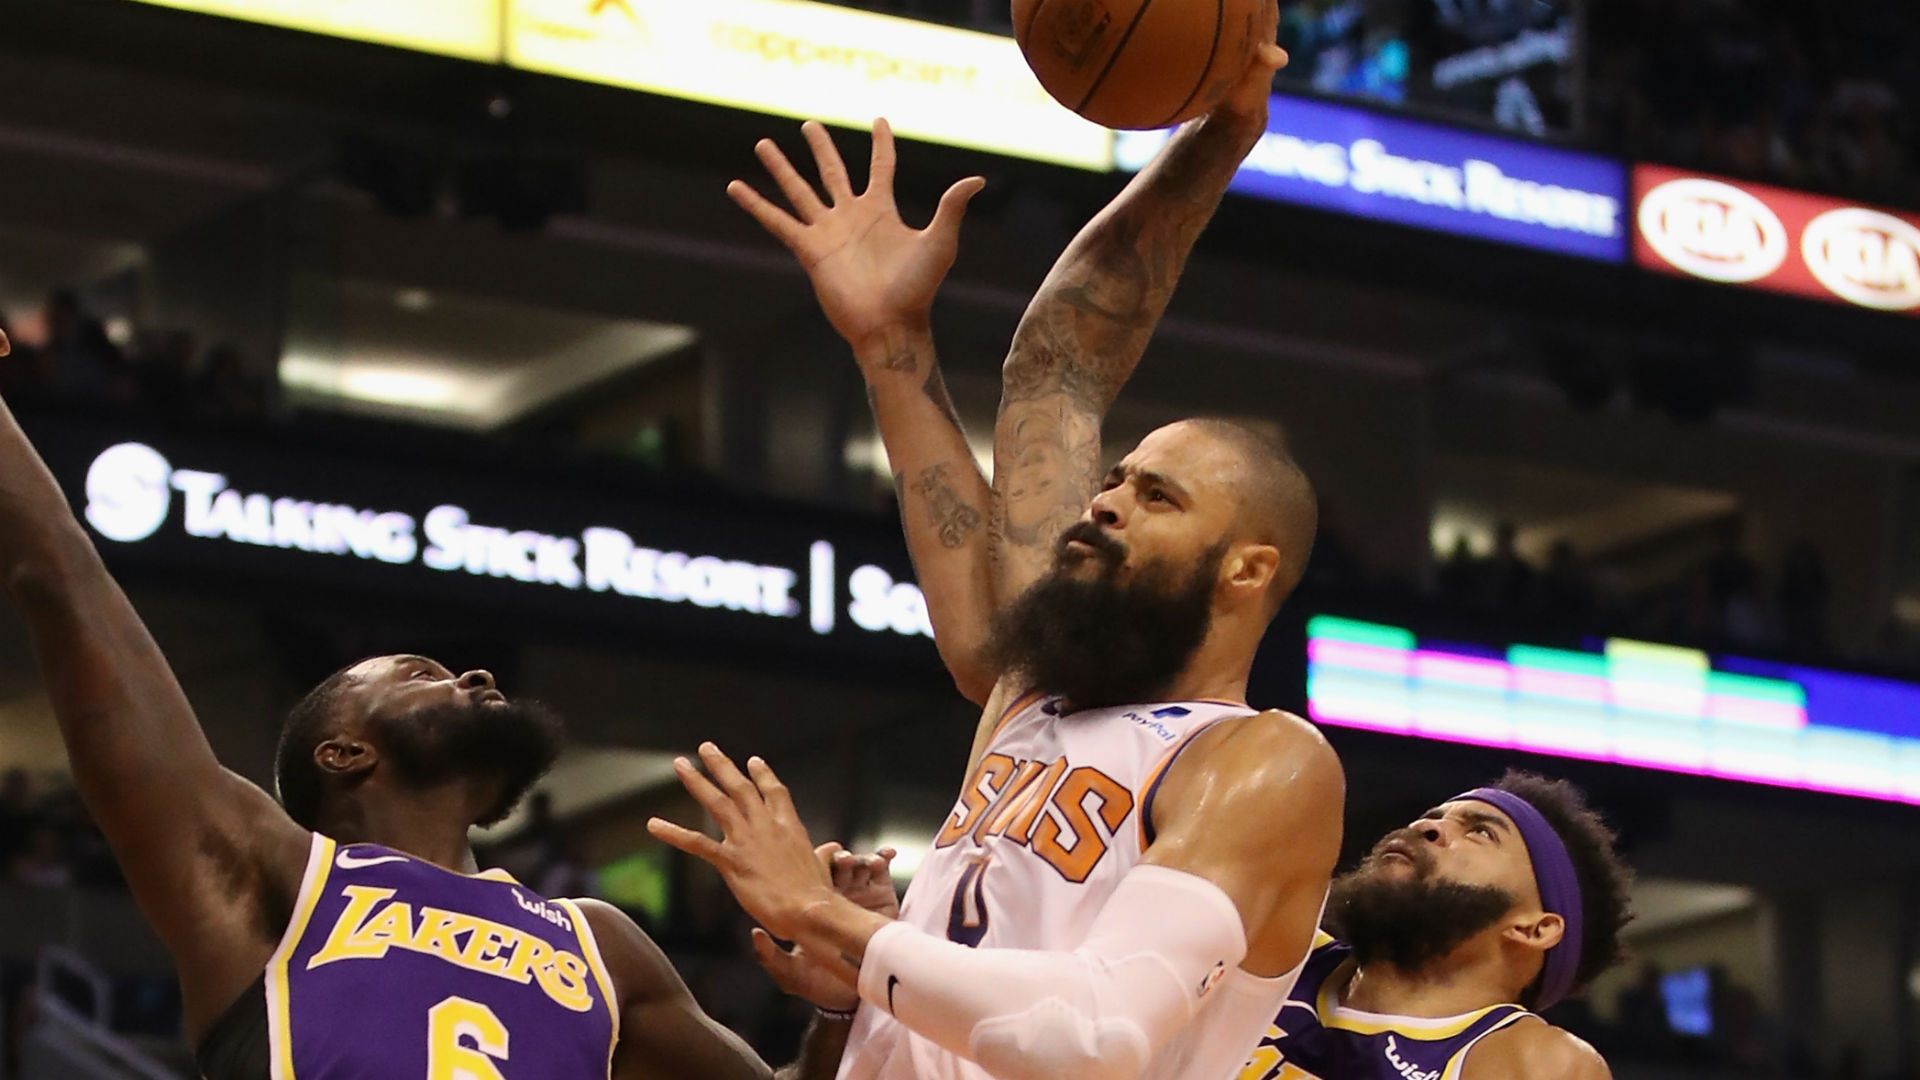 b3030fcfab4 NBA free agency rumors: Suns to waive C Tyson Chandler; Lakers favorites to  sign